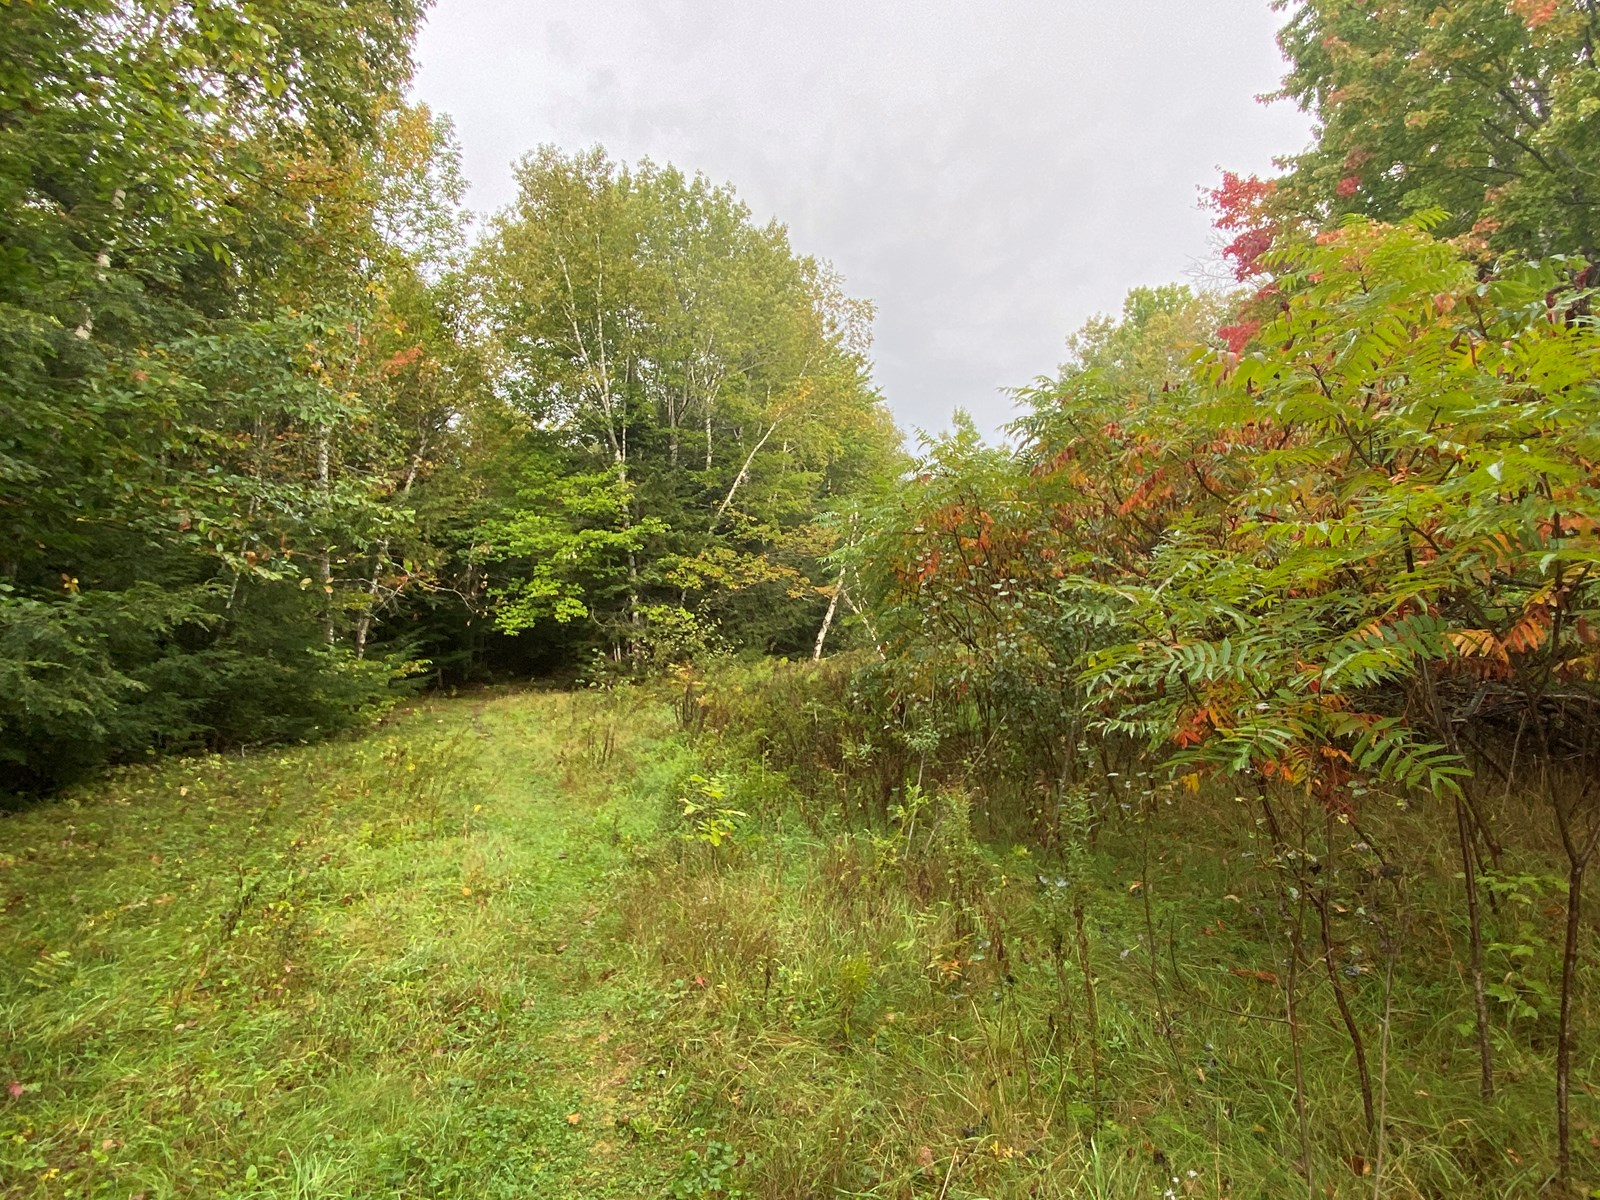 48 Acres Land for Sale Old Town Maine